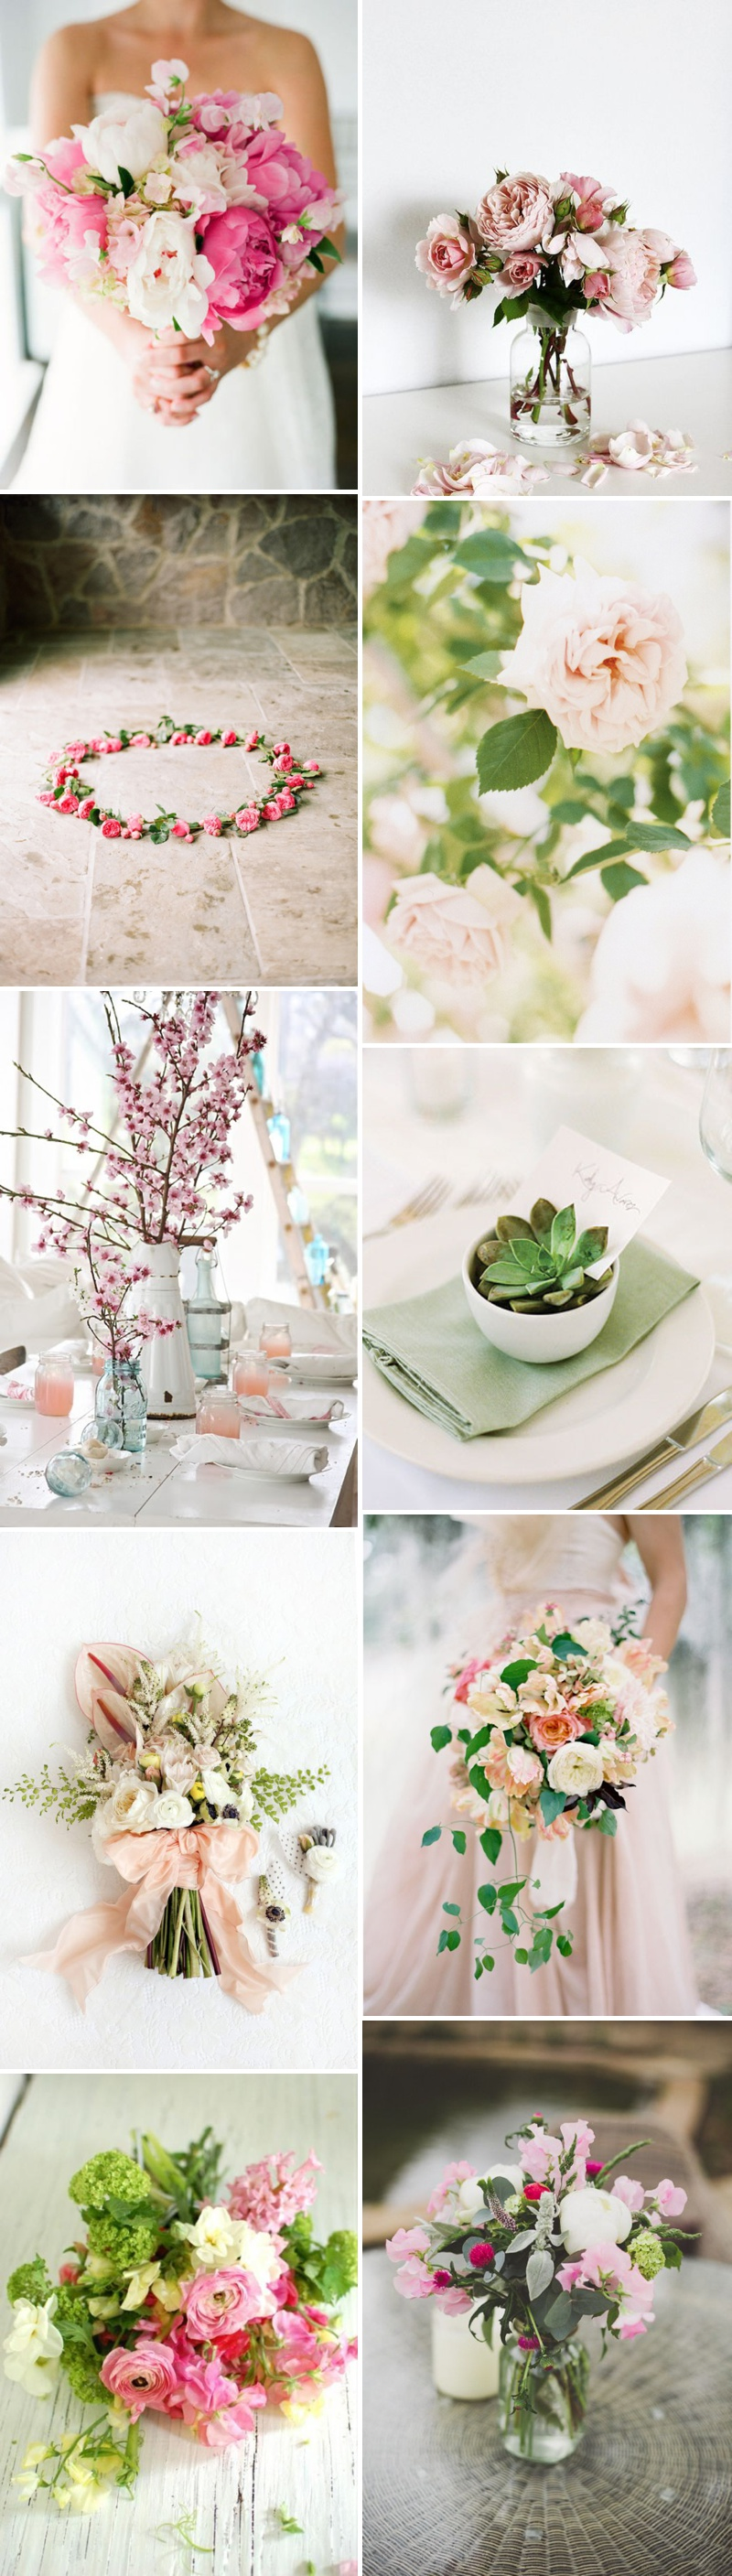 A Beautiful Inspiration Post Showing You How To Incorporate A Pink And Green Colour Scheme Into Your Wedding Day_0002